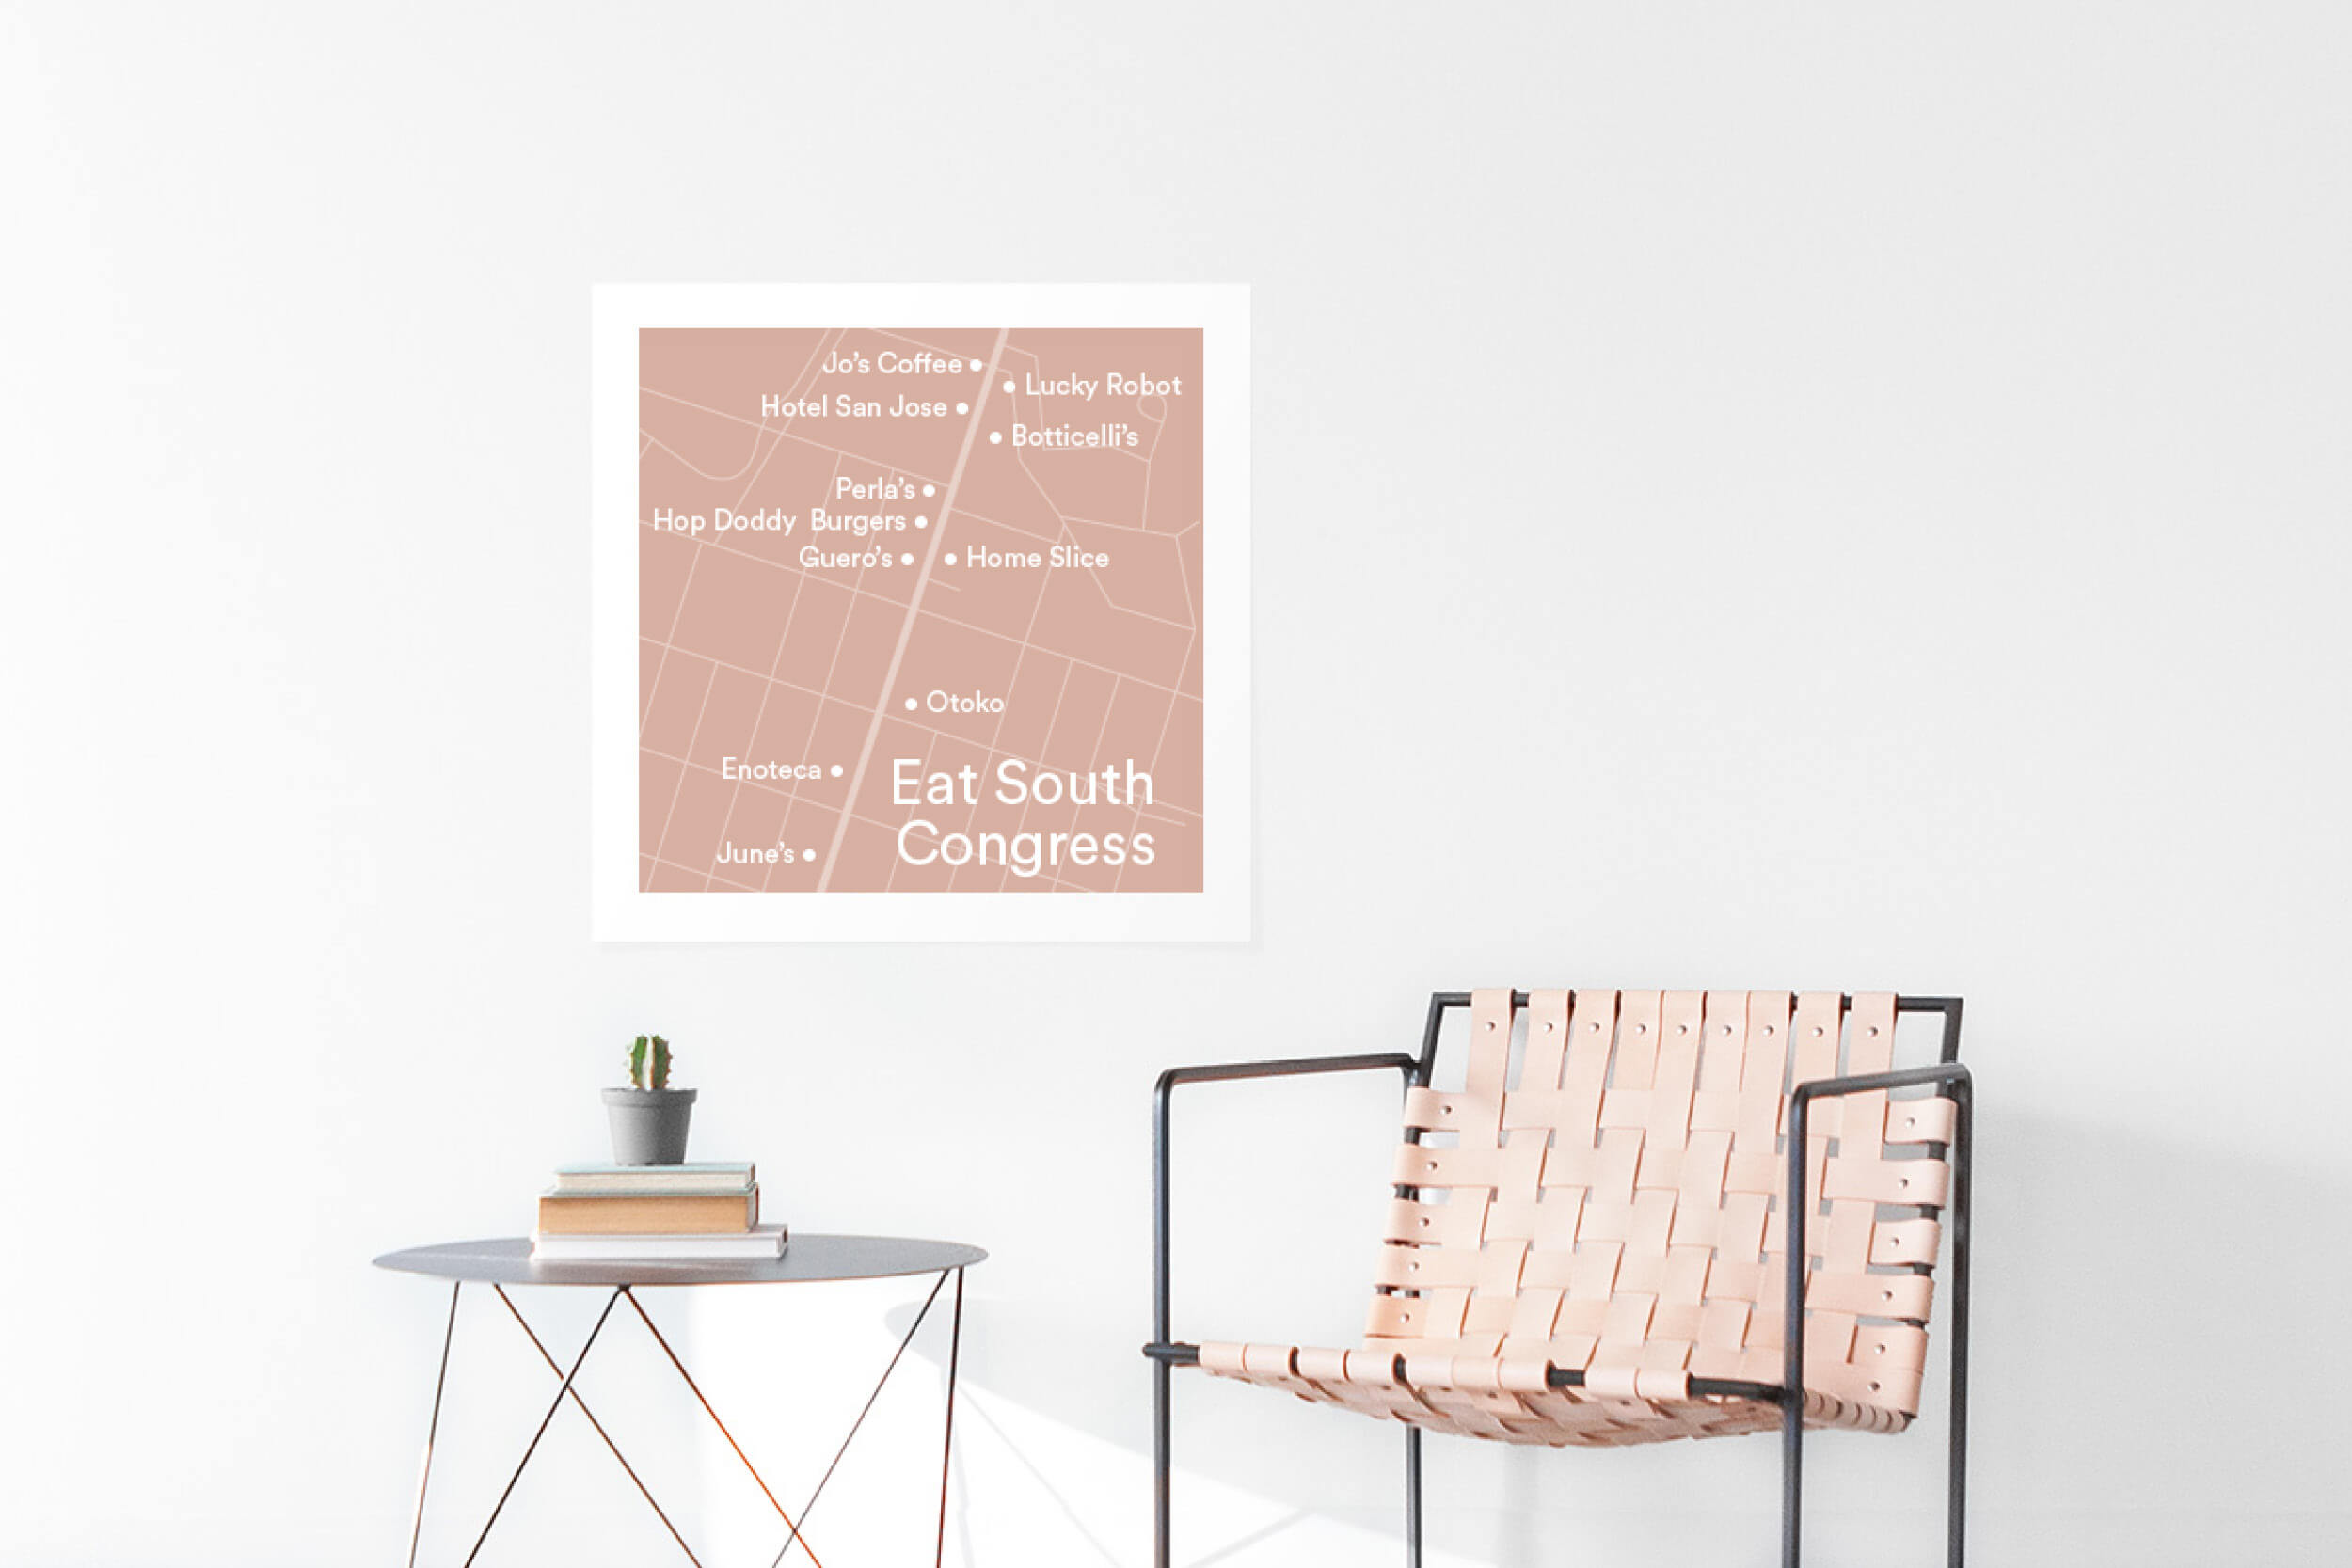 Printed map of neighborhood restaurants on the wall